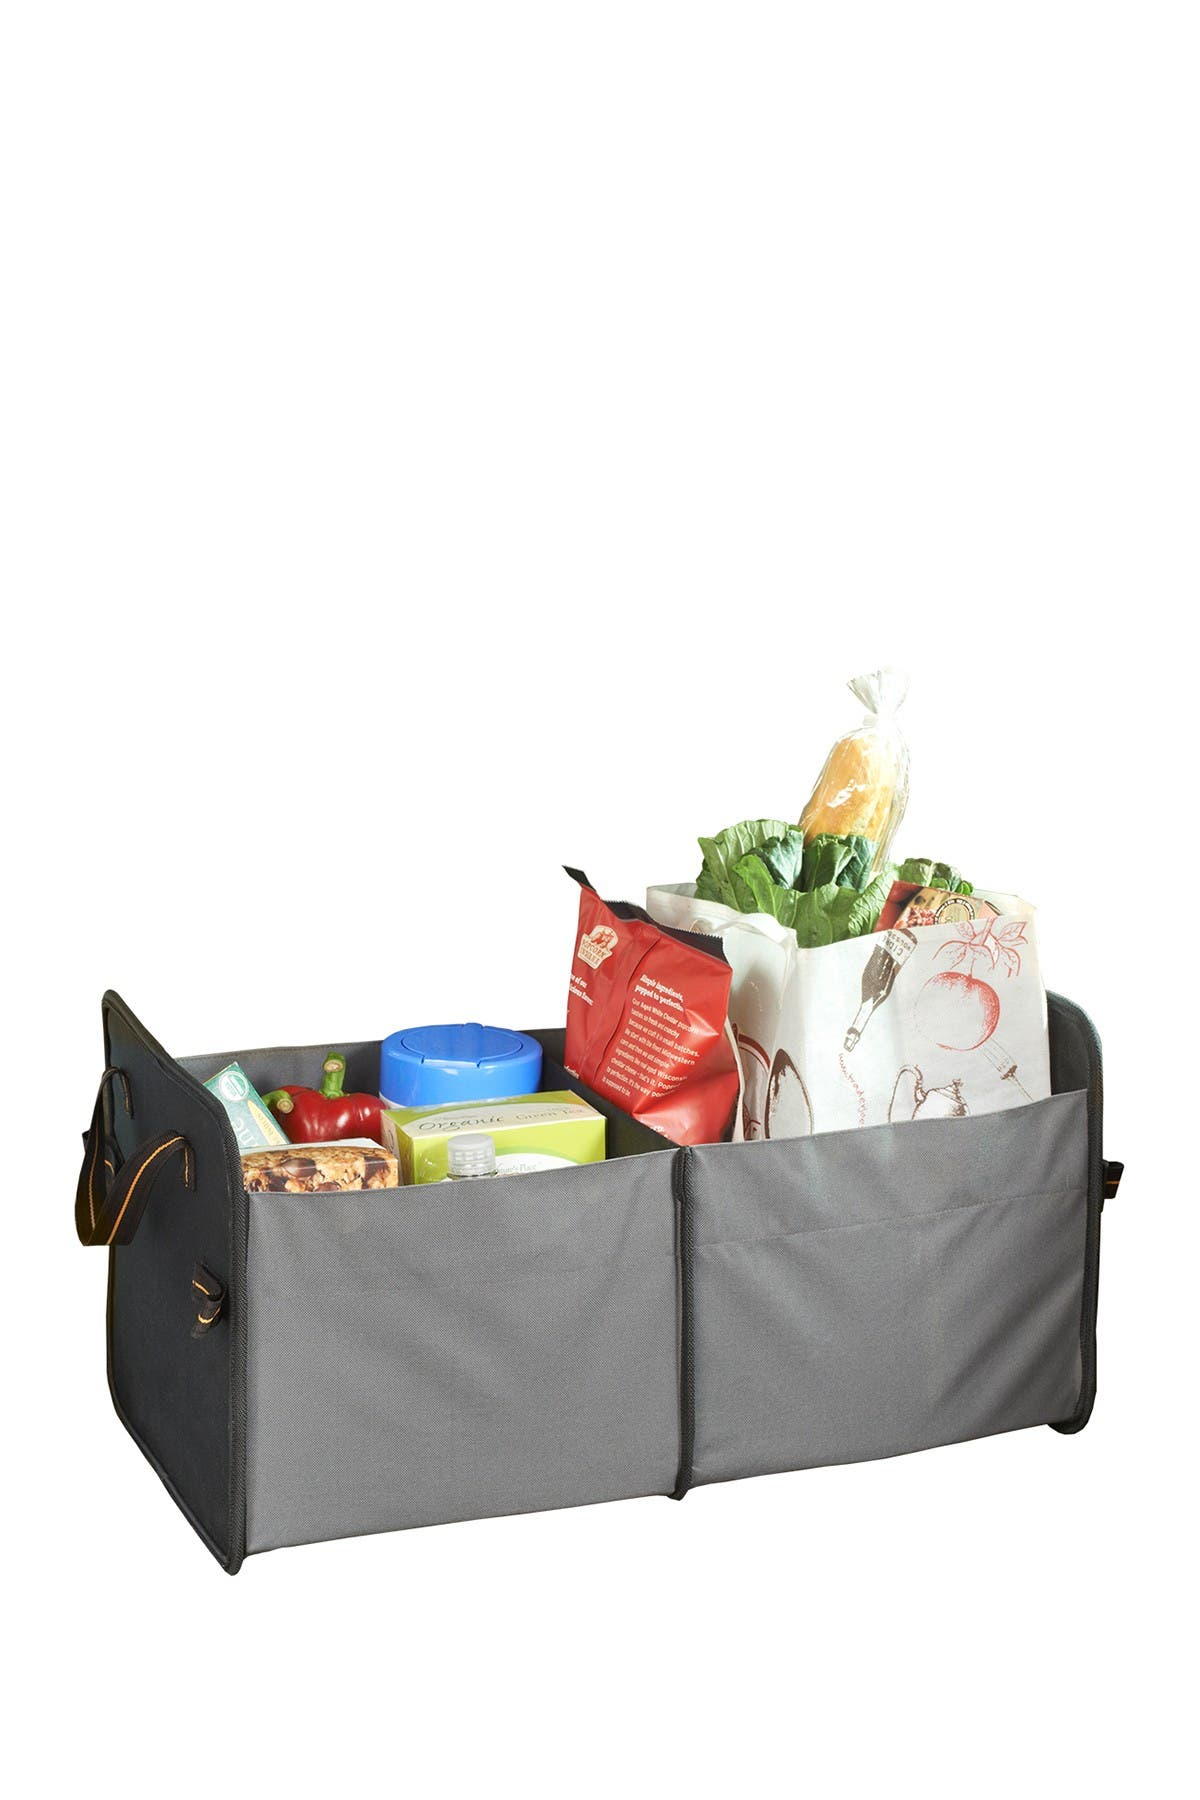 Image of TALUS High Road Trunk & Cargo Bin - Black